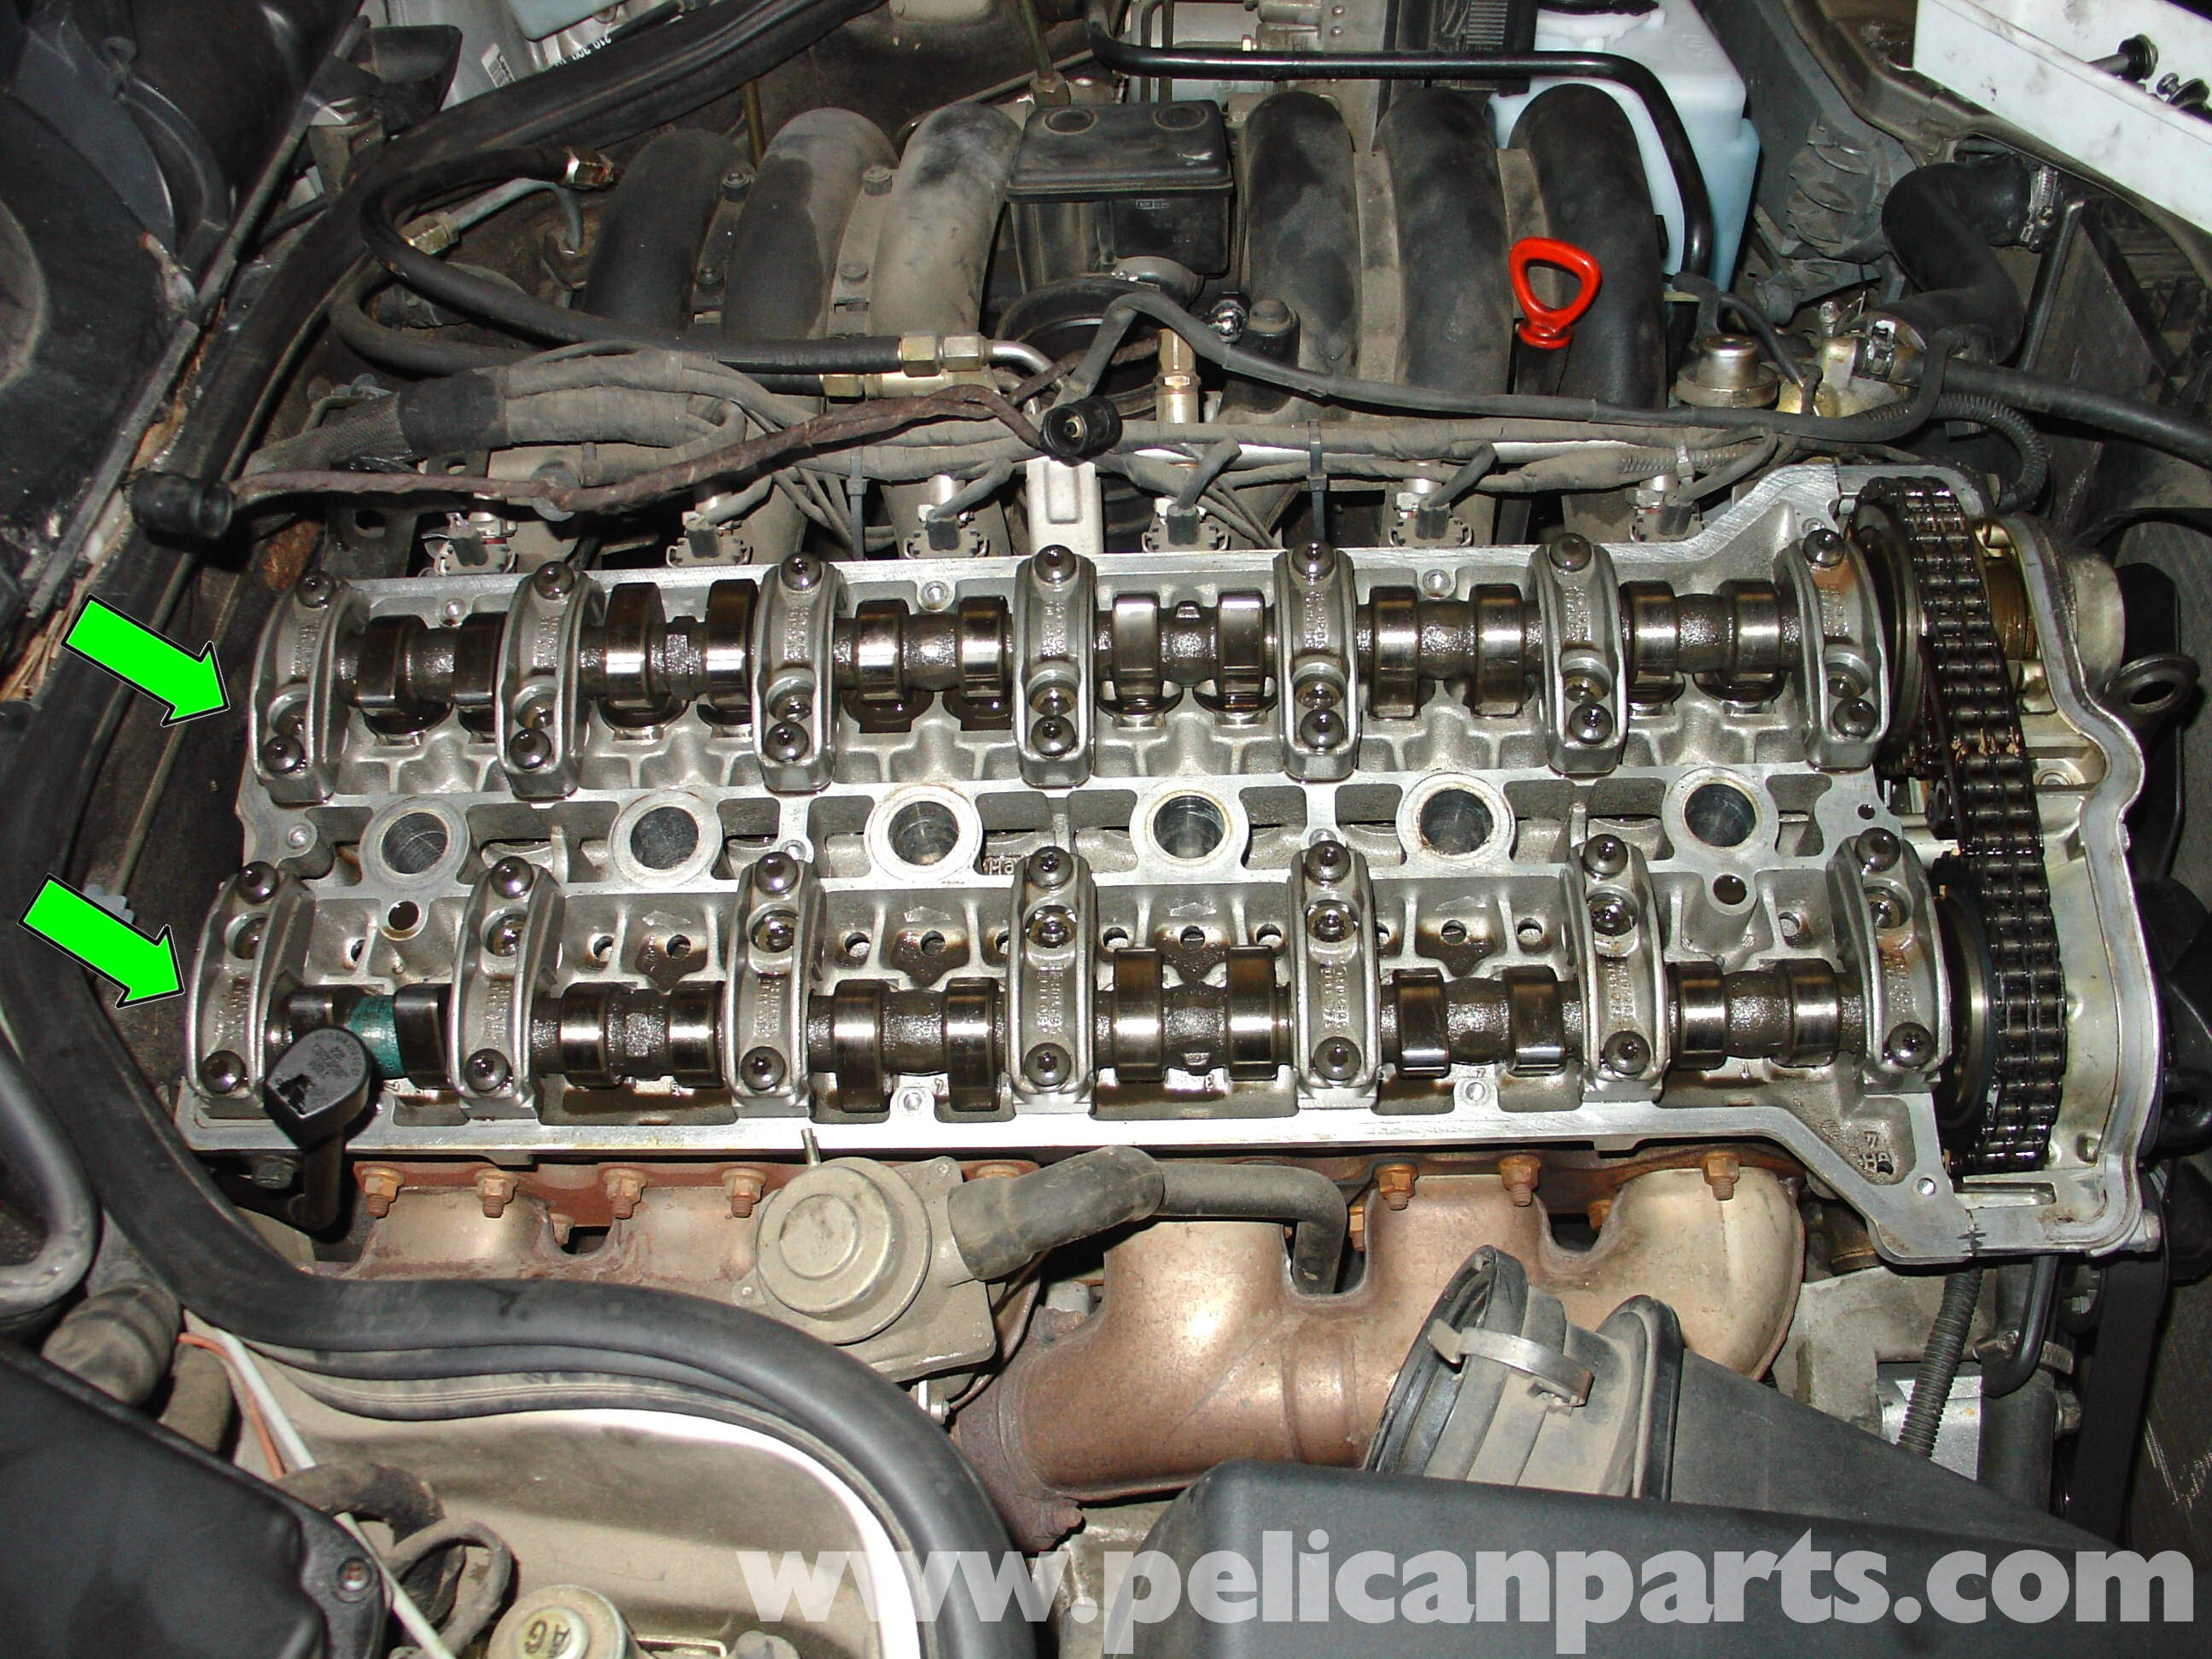 2002 mercedes benz engine diagram best wiring librarymercedes s430 engine diagram mercedes benz w210 fixing mon vacuum leaks 1996 03 e320 e420 of